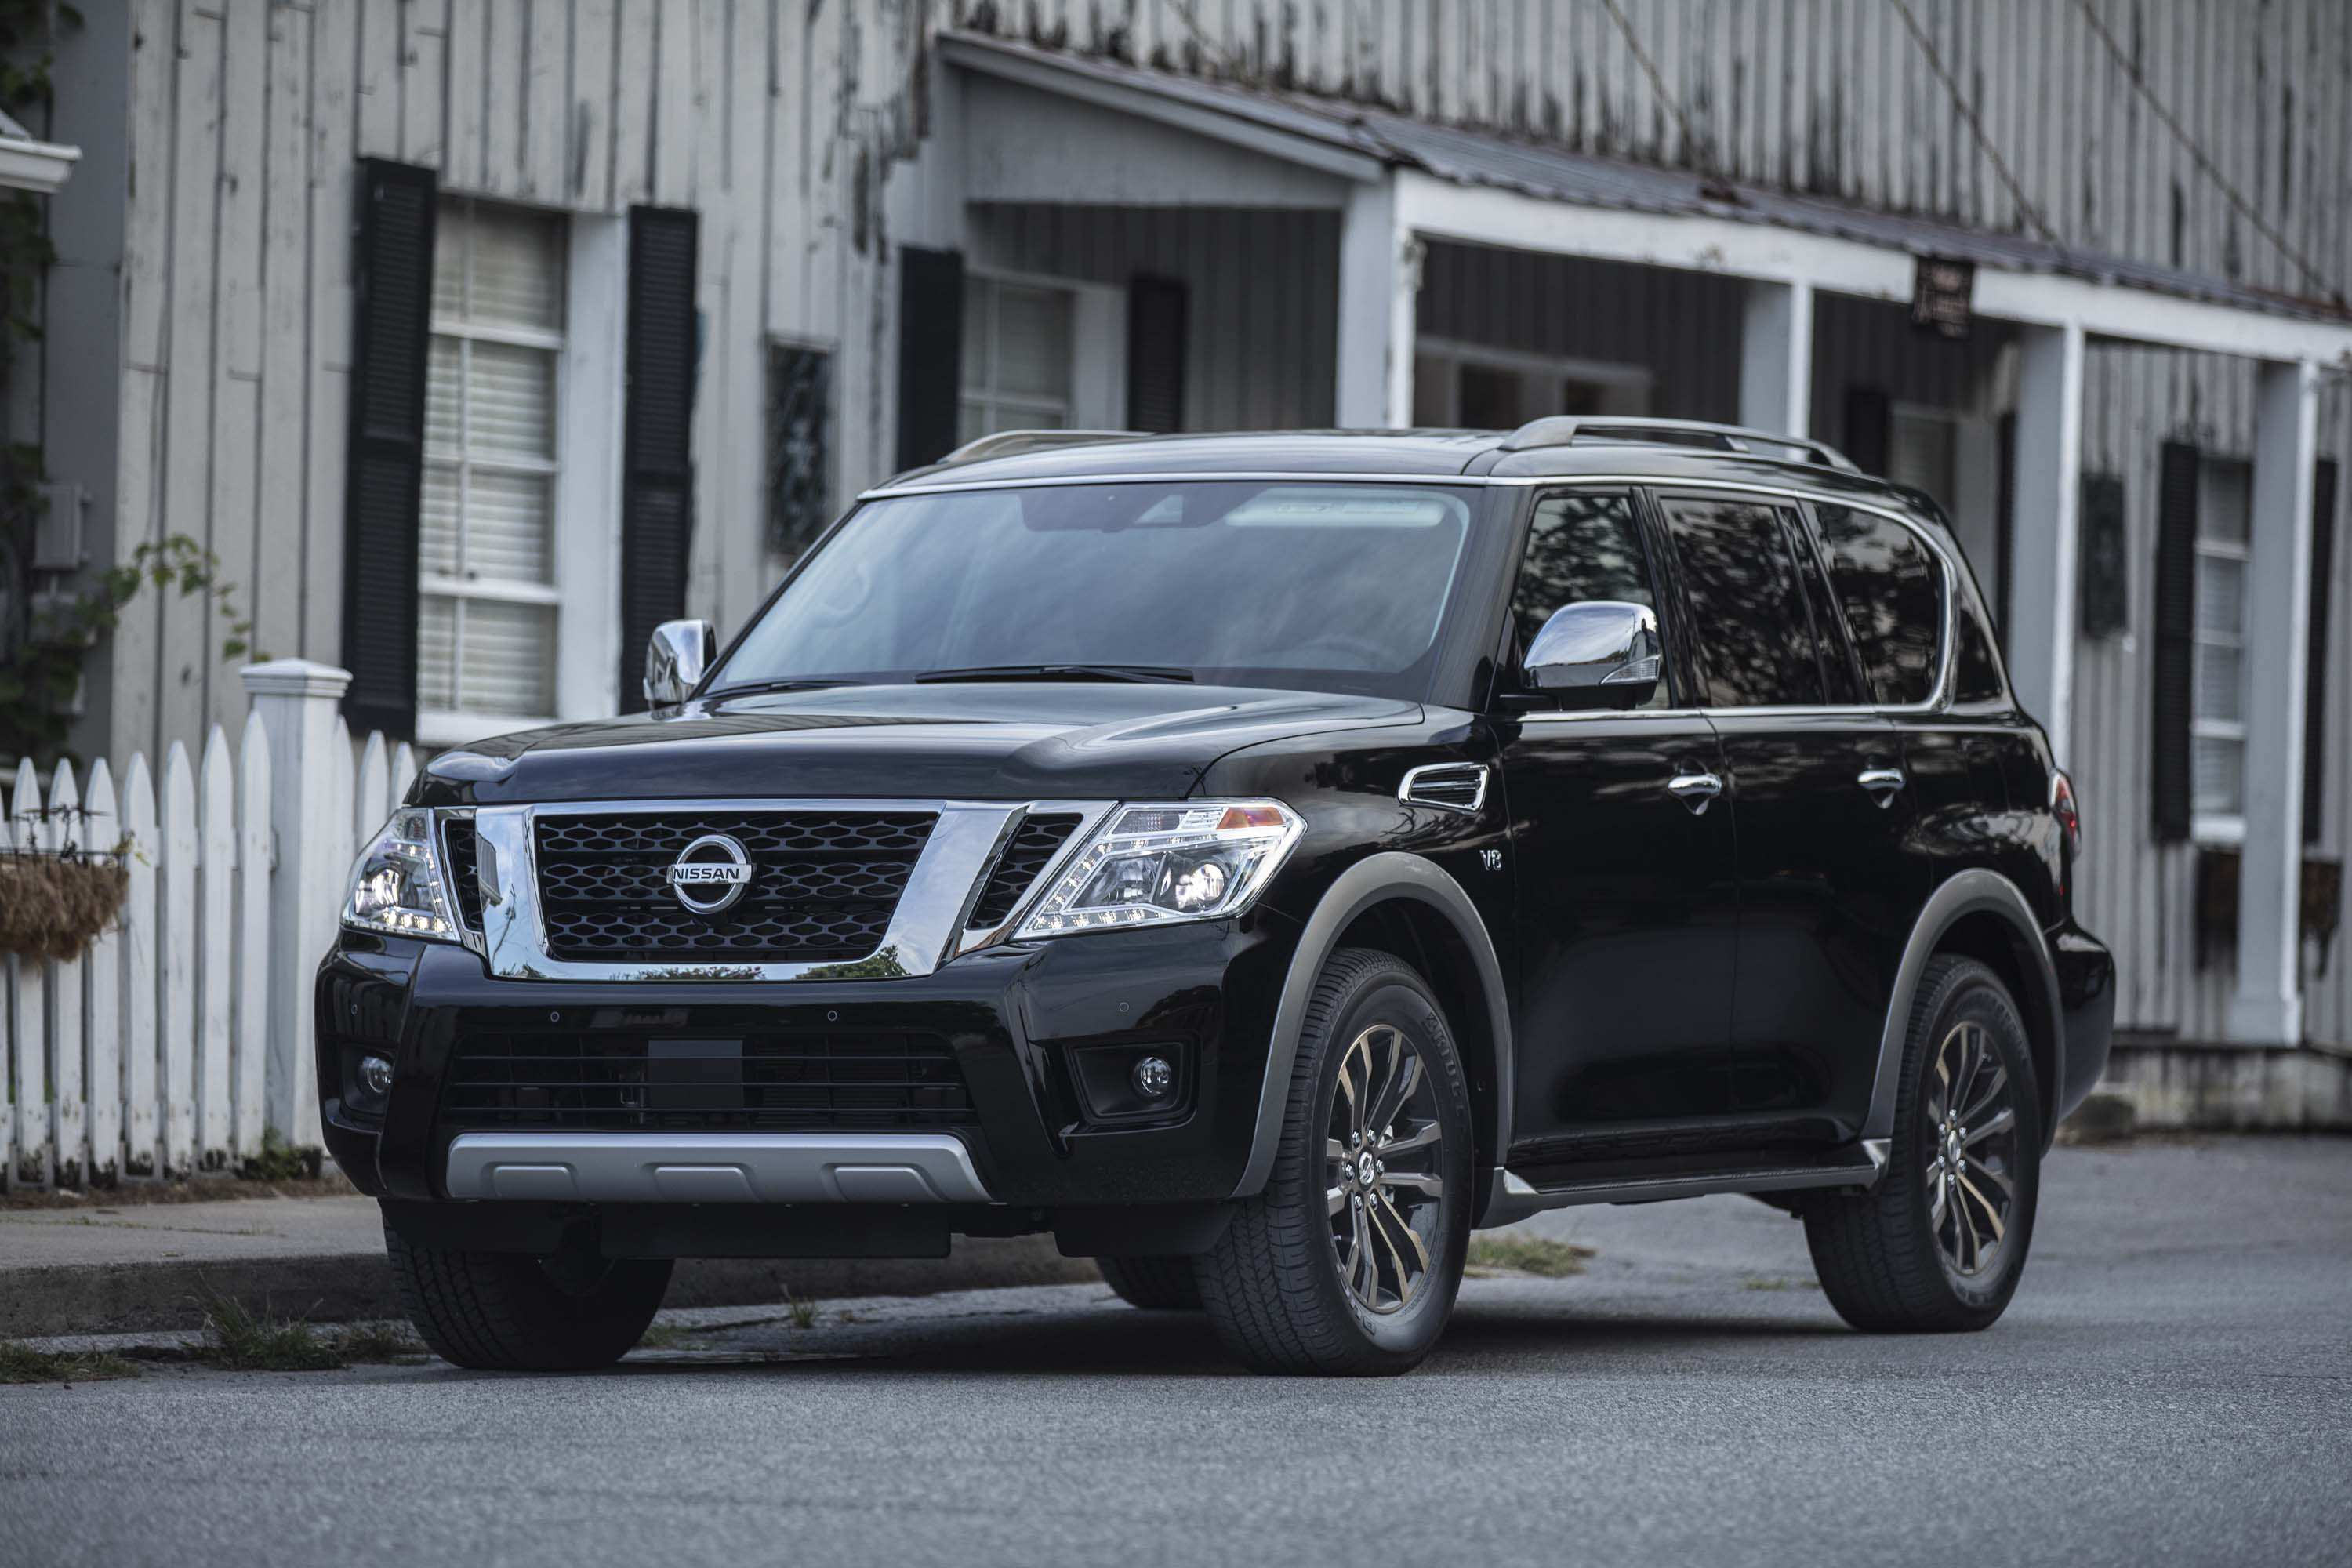 86 Best Review Best Nissan 2019 Armada Picture Release Date And Review Price for Best Nissan 2019 Armada Picture Release Date And Review